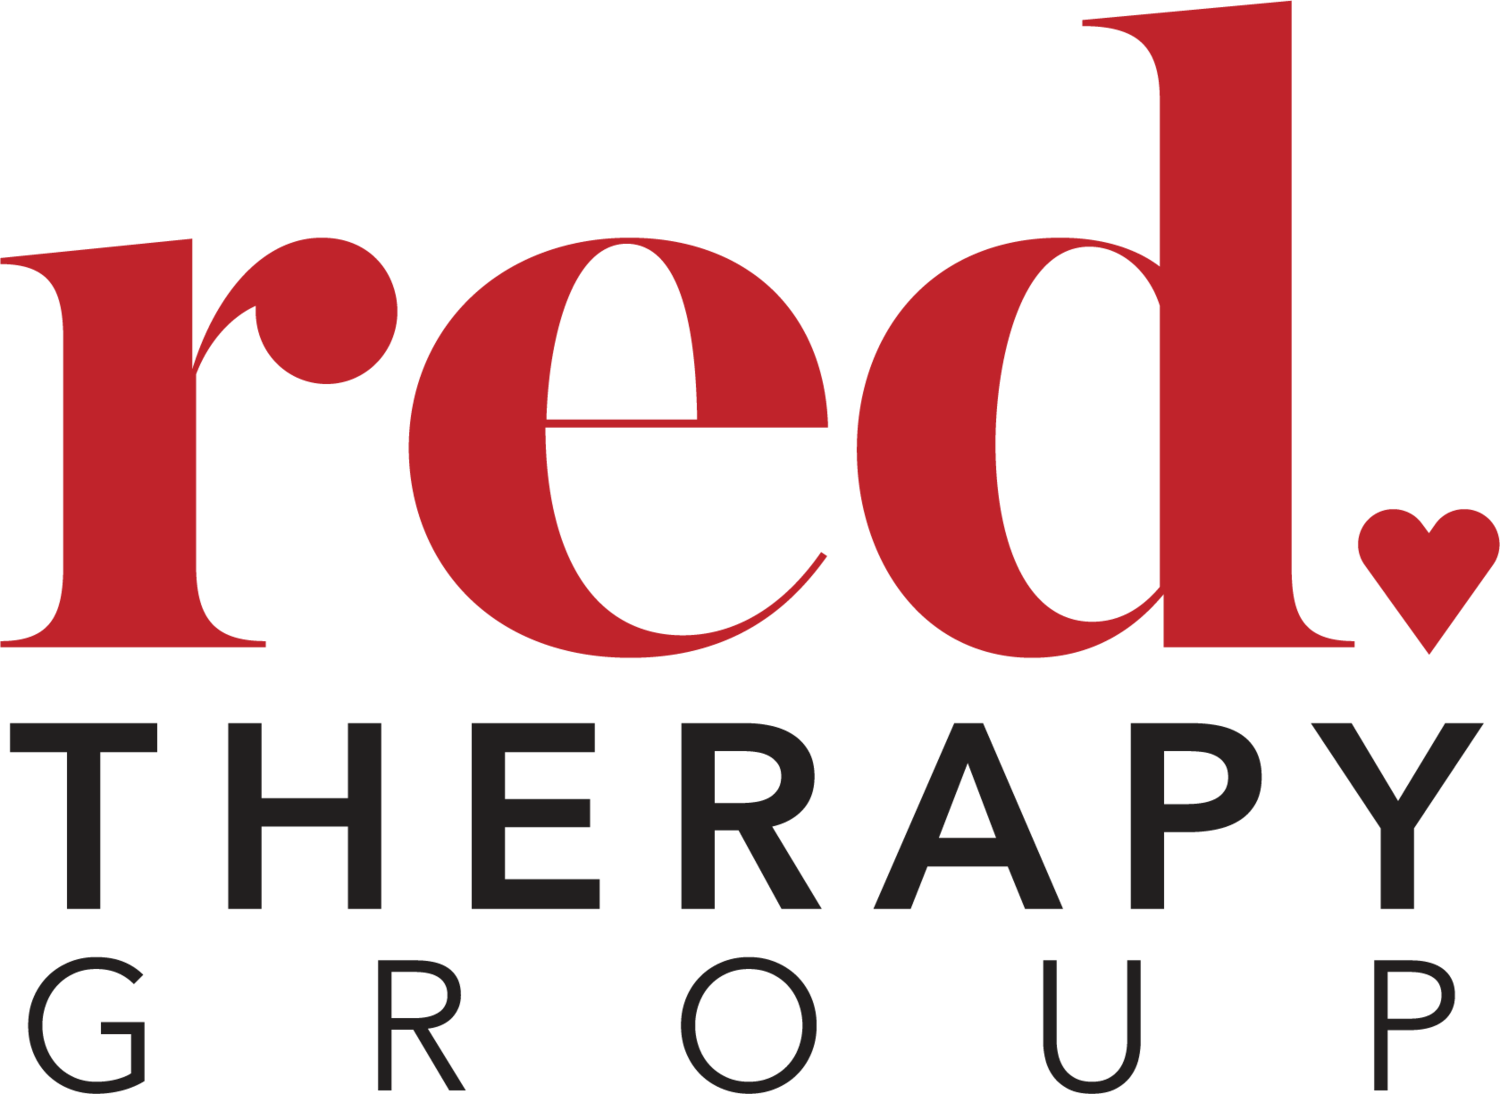 RED THERAPY GROUP